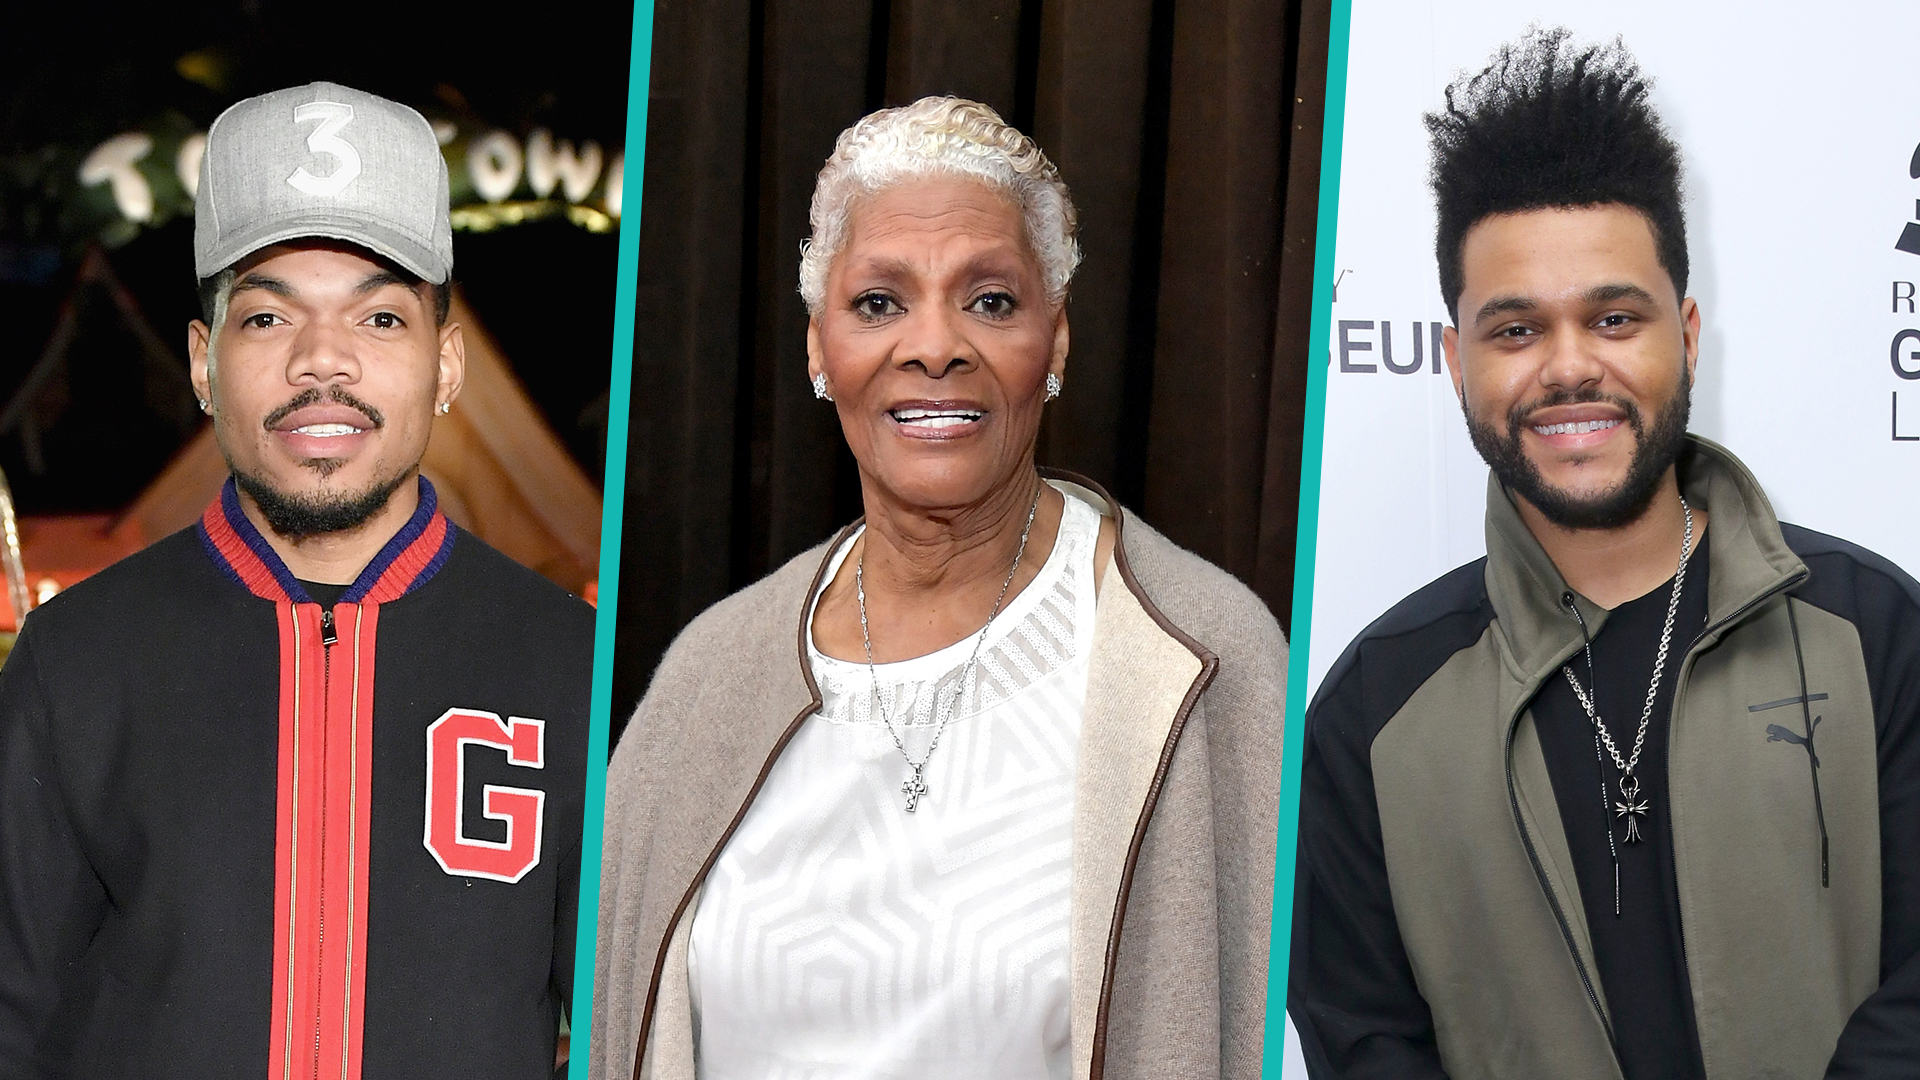 Dionne Warwick asks Chance The Rapper to explain his stage name